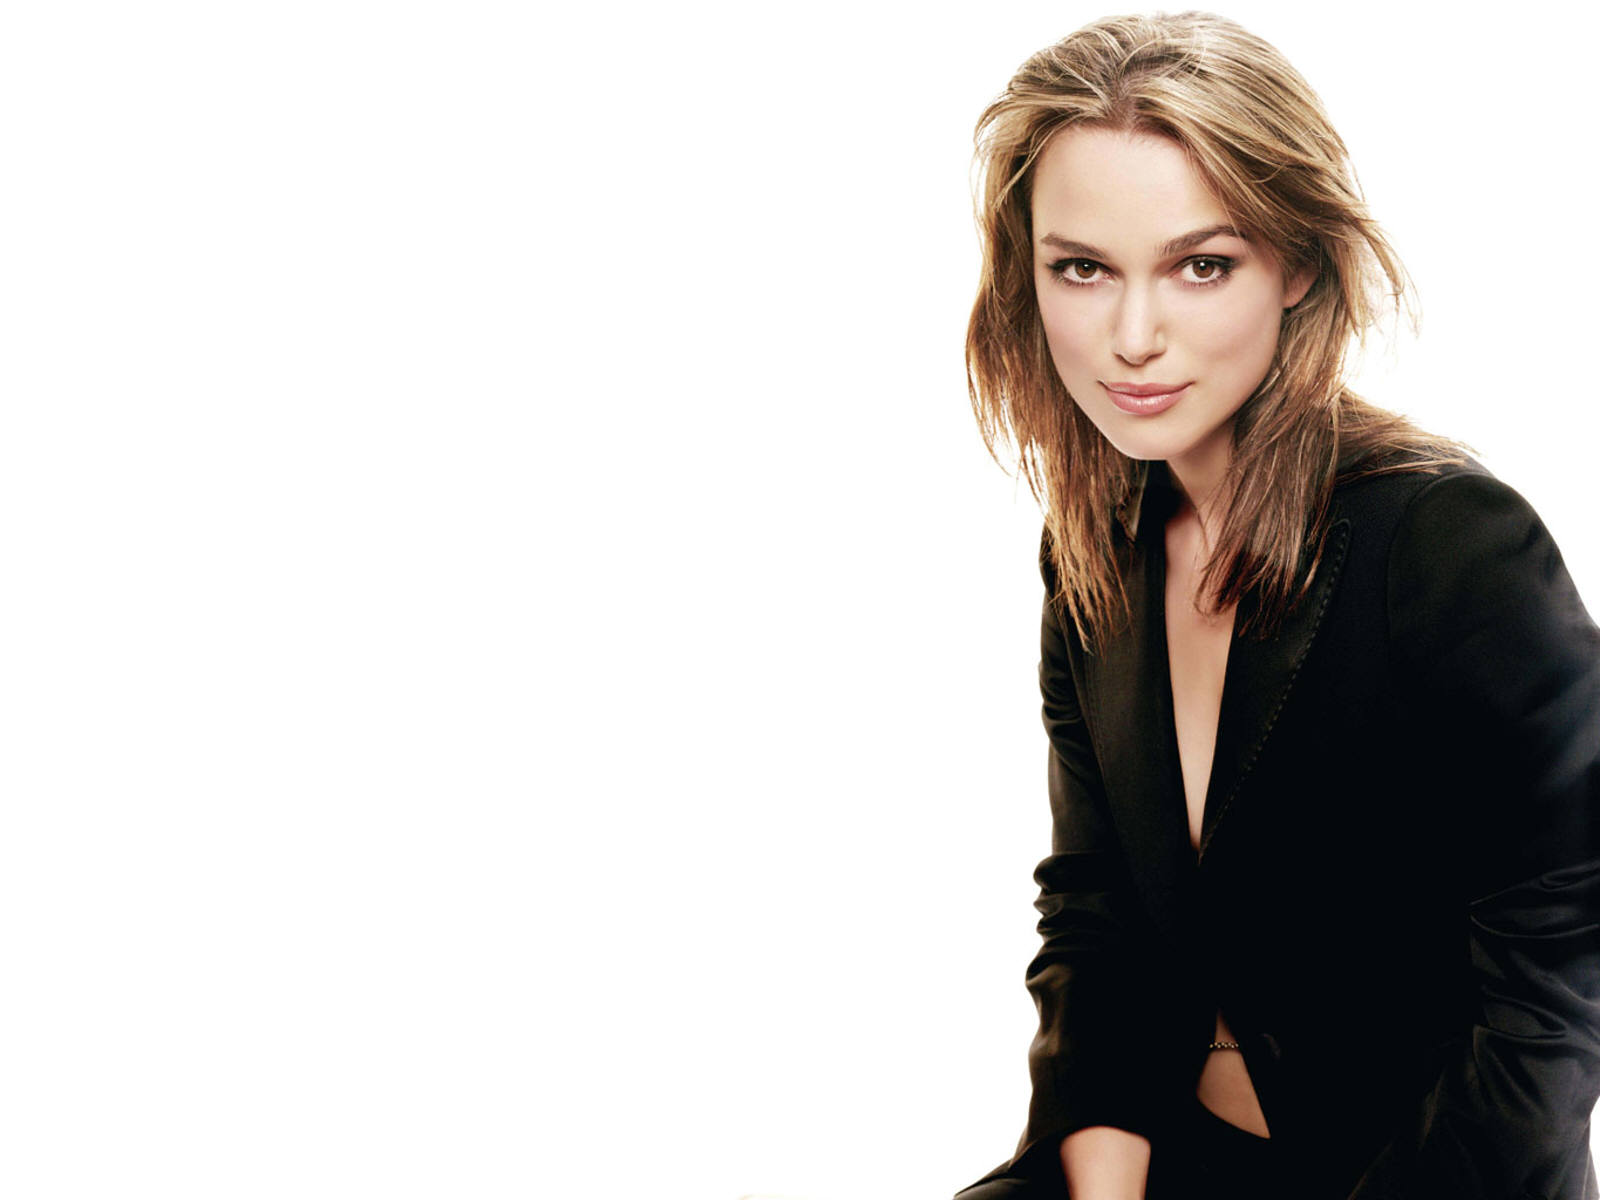 Moving Wallpapers For Girls Keira Knightley Wallpapers High Resolution And Quality